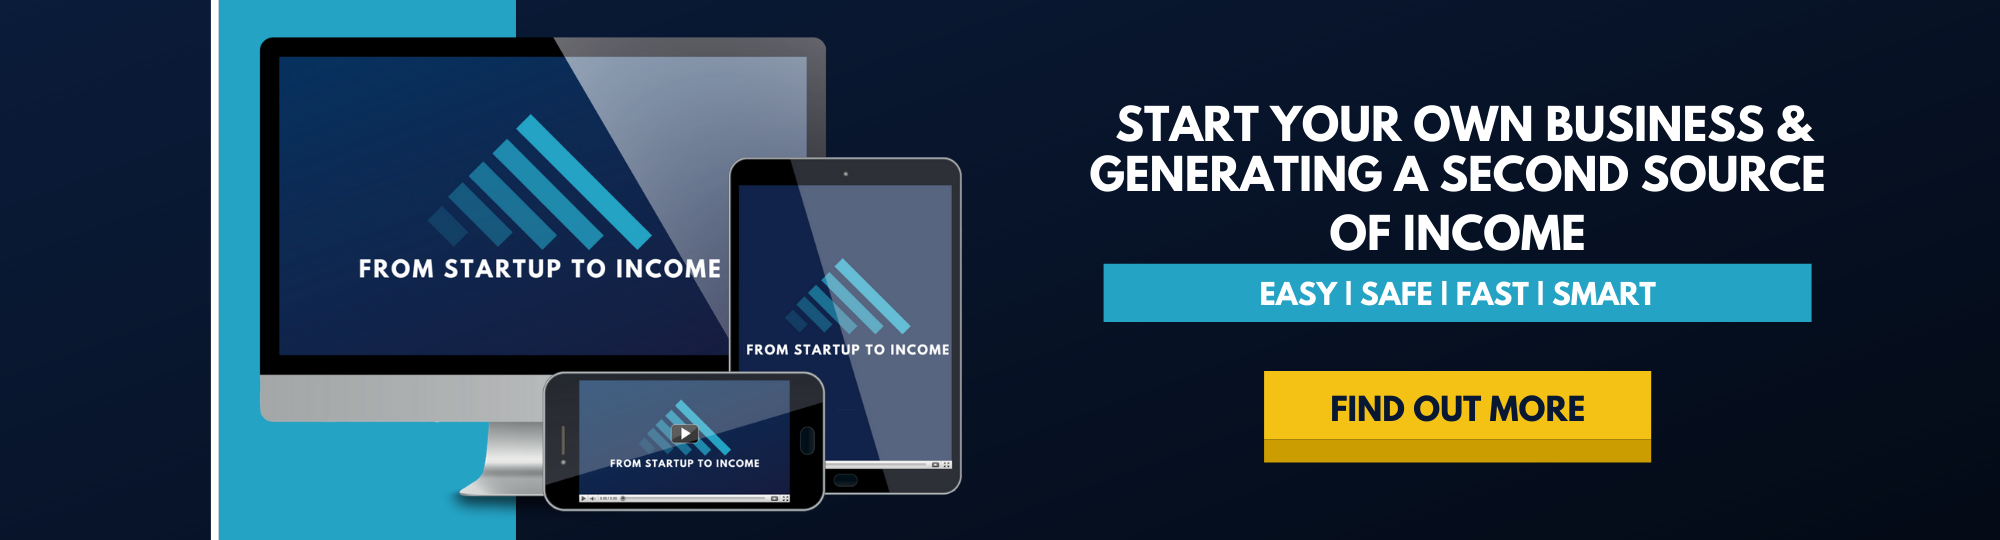 From Startup to Income